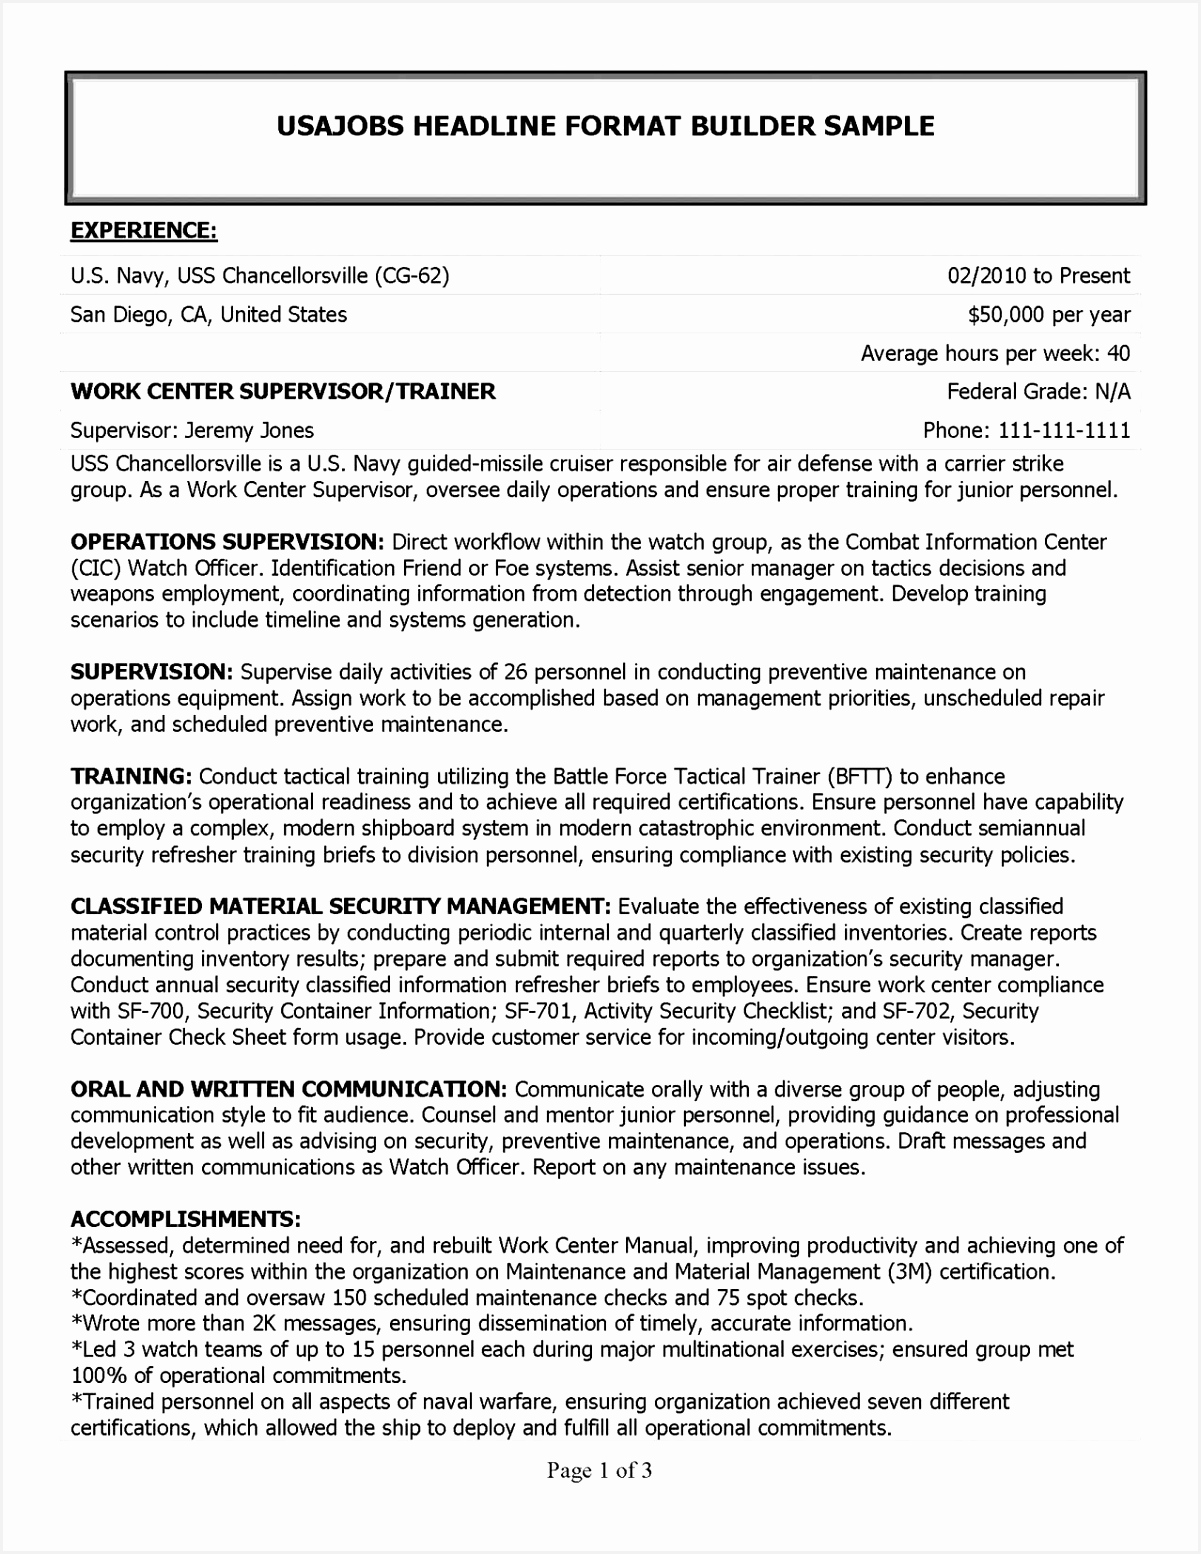 Examples Resumes for Jobs Avdlc Luxury Supply Chain Resume Examples Staggering Example Job Resume Awesome Of Examples Resumes for Jobs Anrsu Luxury Examples A Resume Lovely Example Job Resume Fresh Luxury Examples